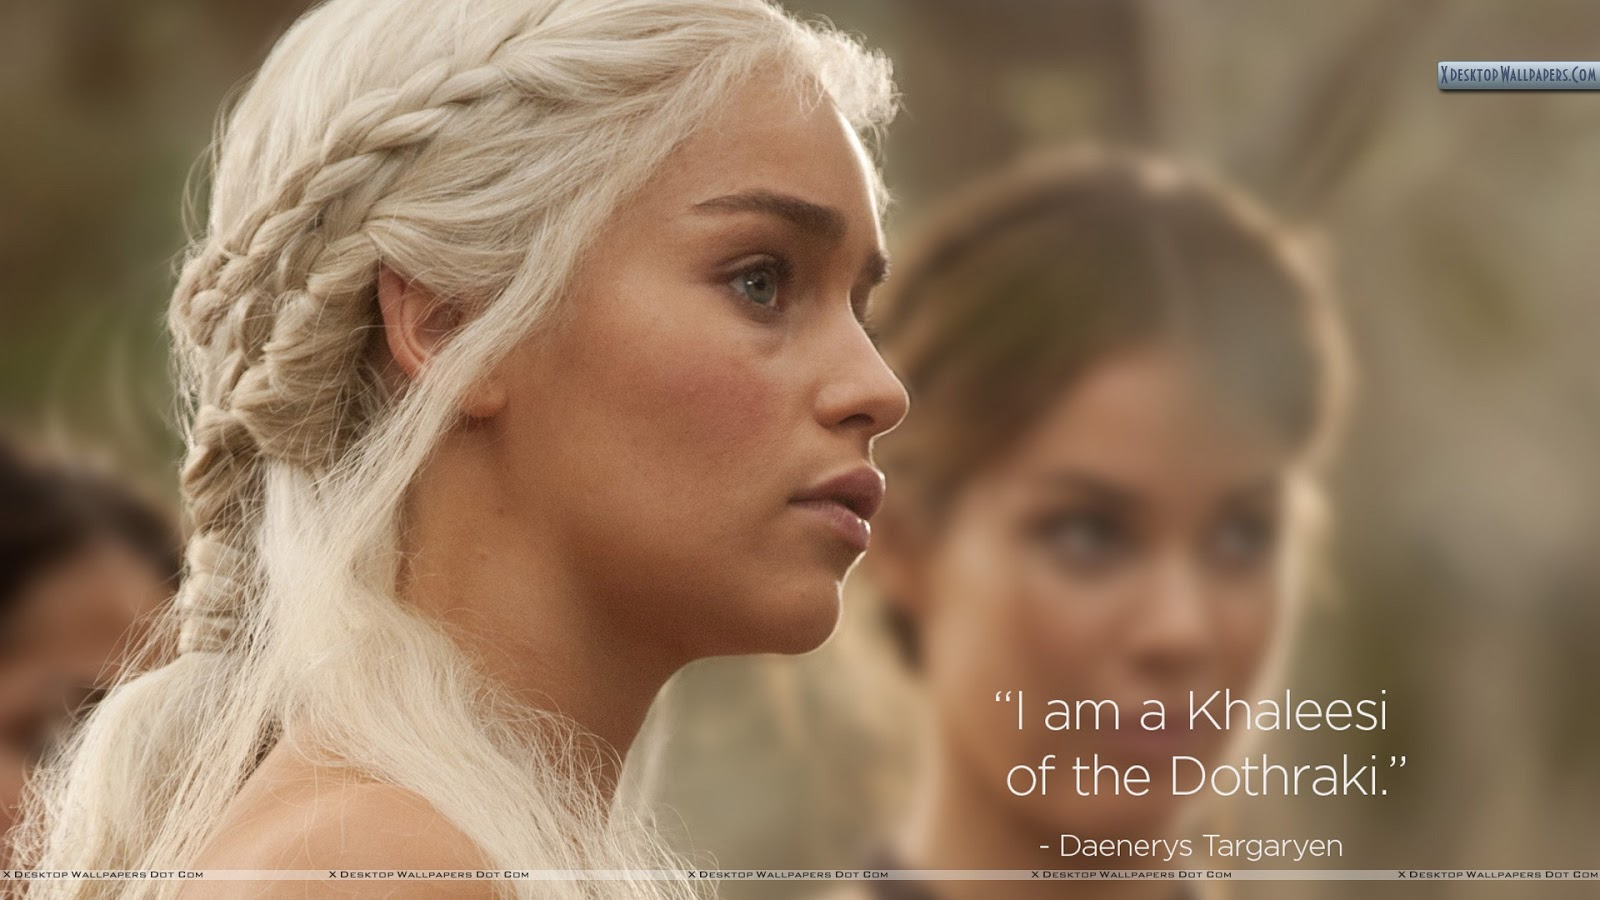 http://4.bp.blogspot.com/-ZeF52-xEiRM/UXPzSC8VAdI/AAAAAAACguY/K6v6ne3vYR0/s1600/Game-Of-Thrones-Emilia-Clarke-White-Hairs-Side-Face-Closeup.jpg